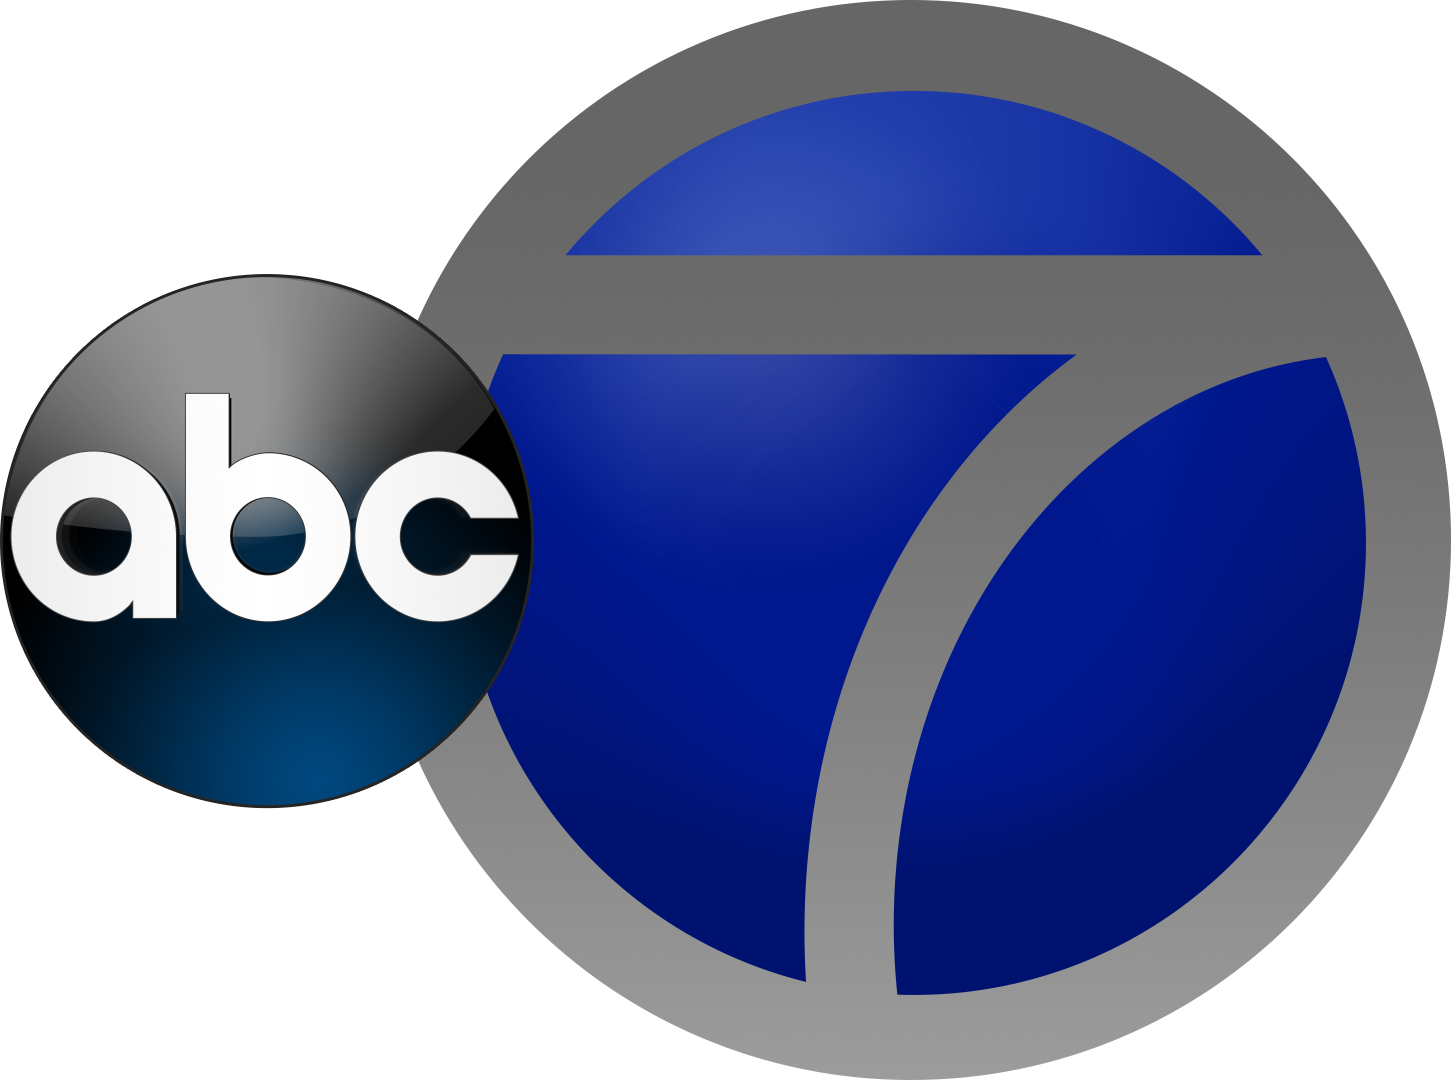 image - abc 7 logo made from scratch   fictionaltvstations